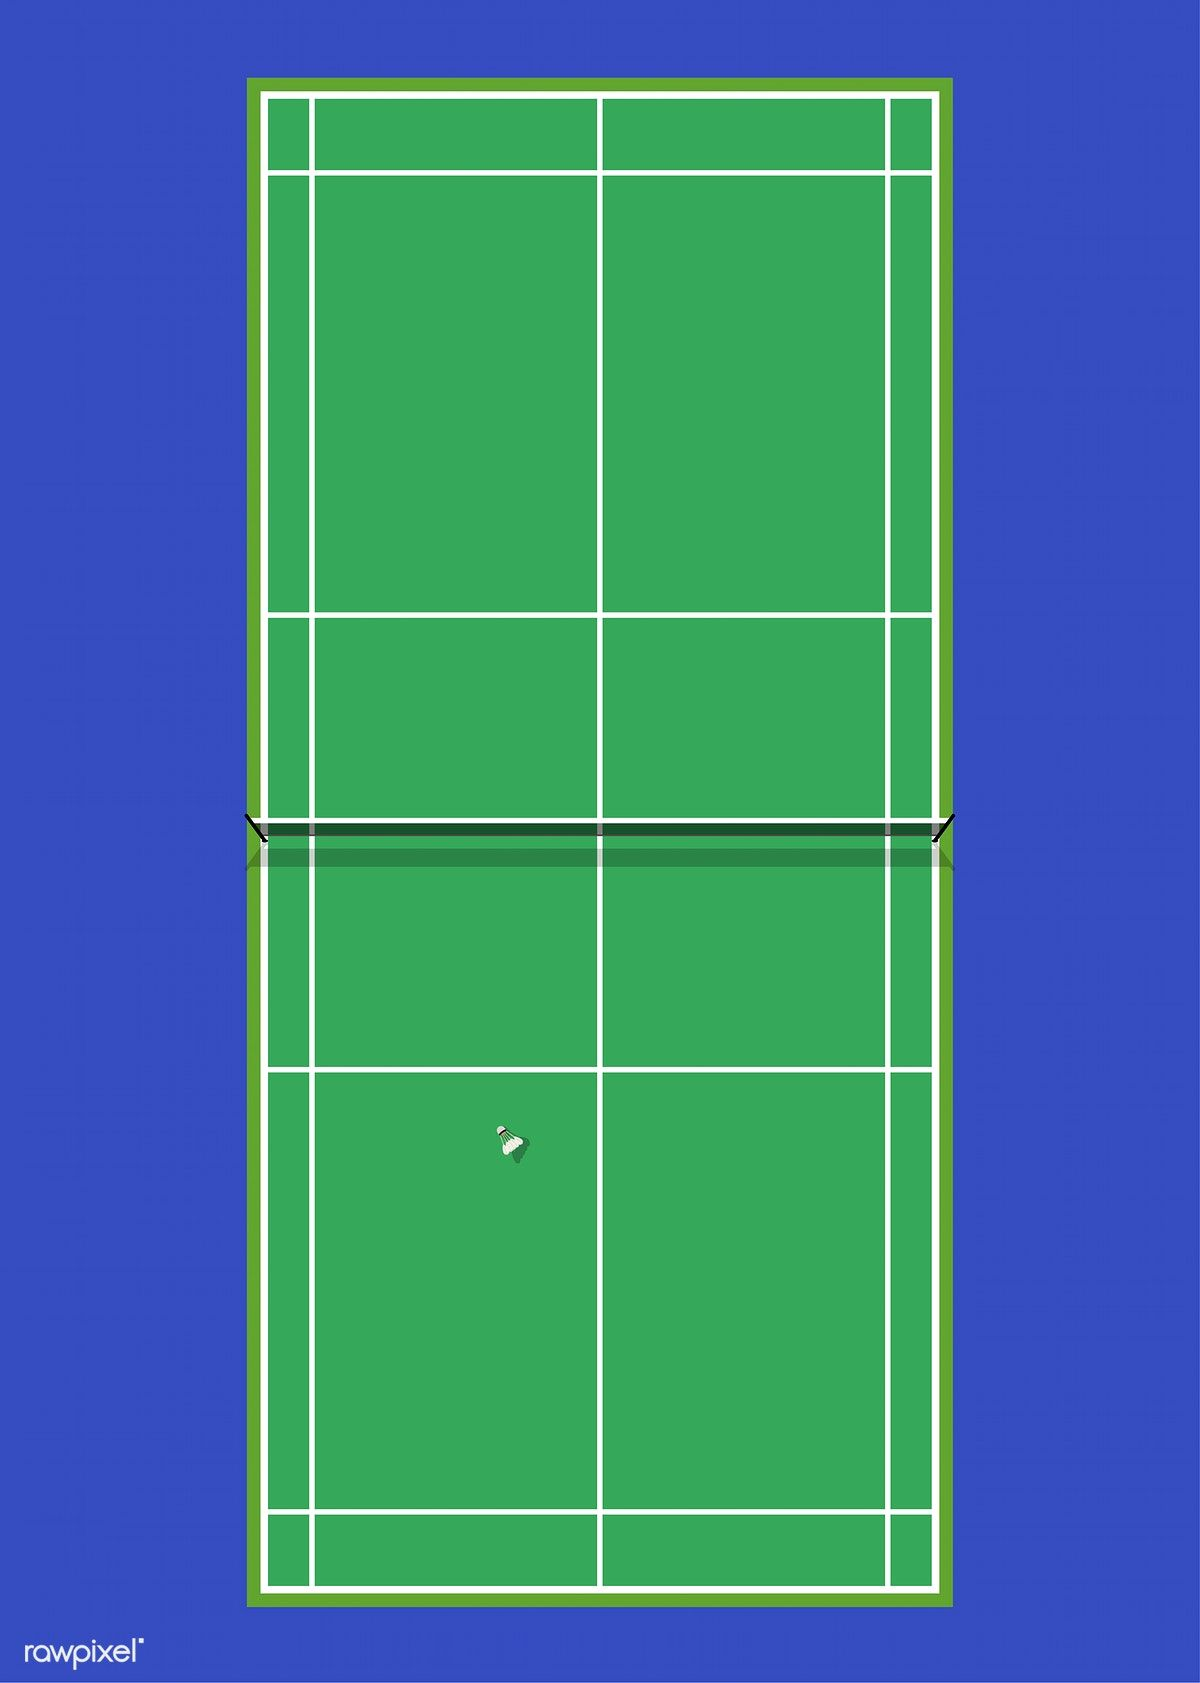 Aerial View Of A Badminton Court Free Image By Rawpixel Com Badminton Court Badminton Court Flooring